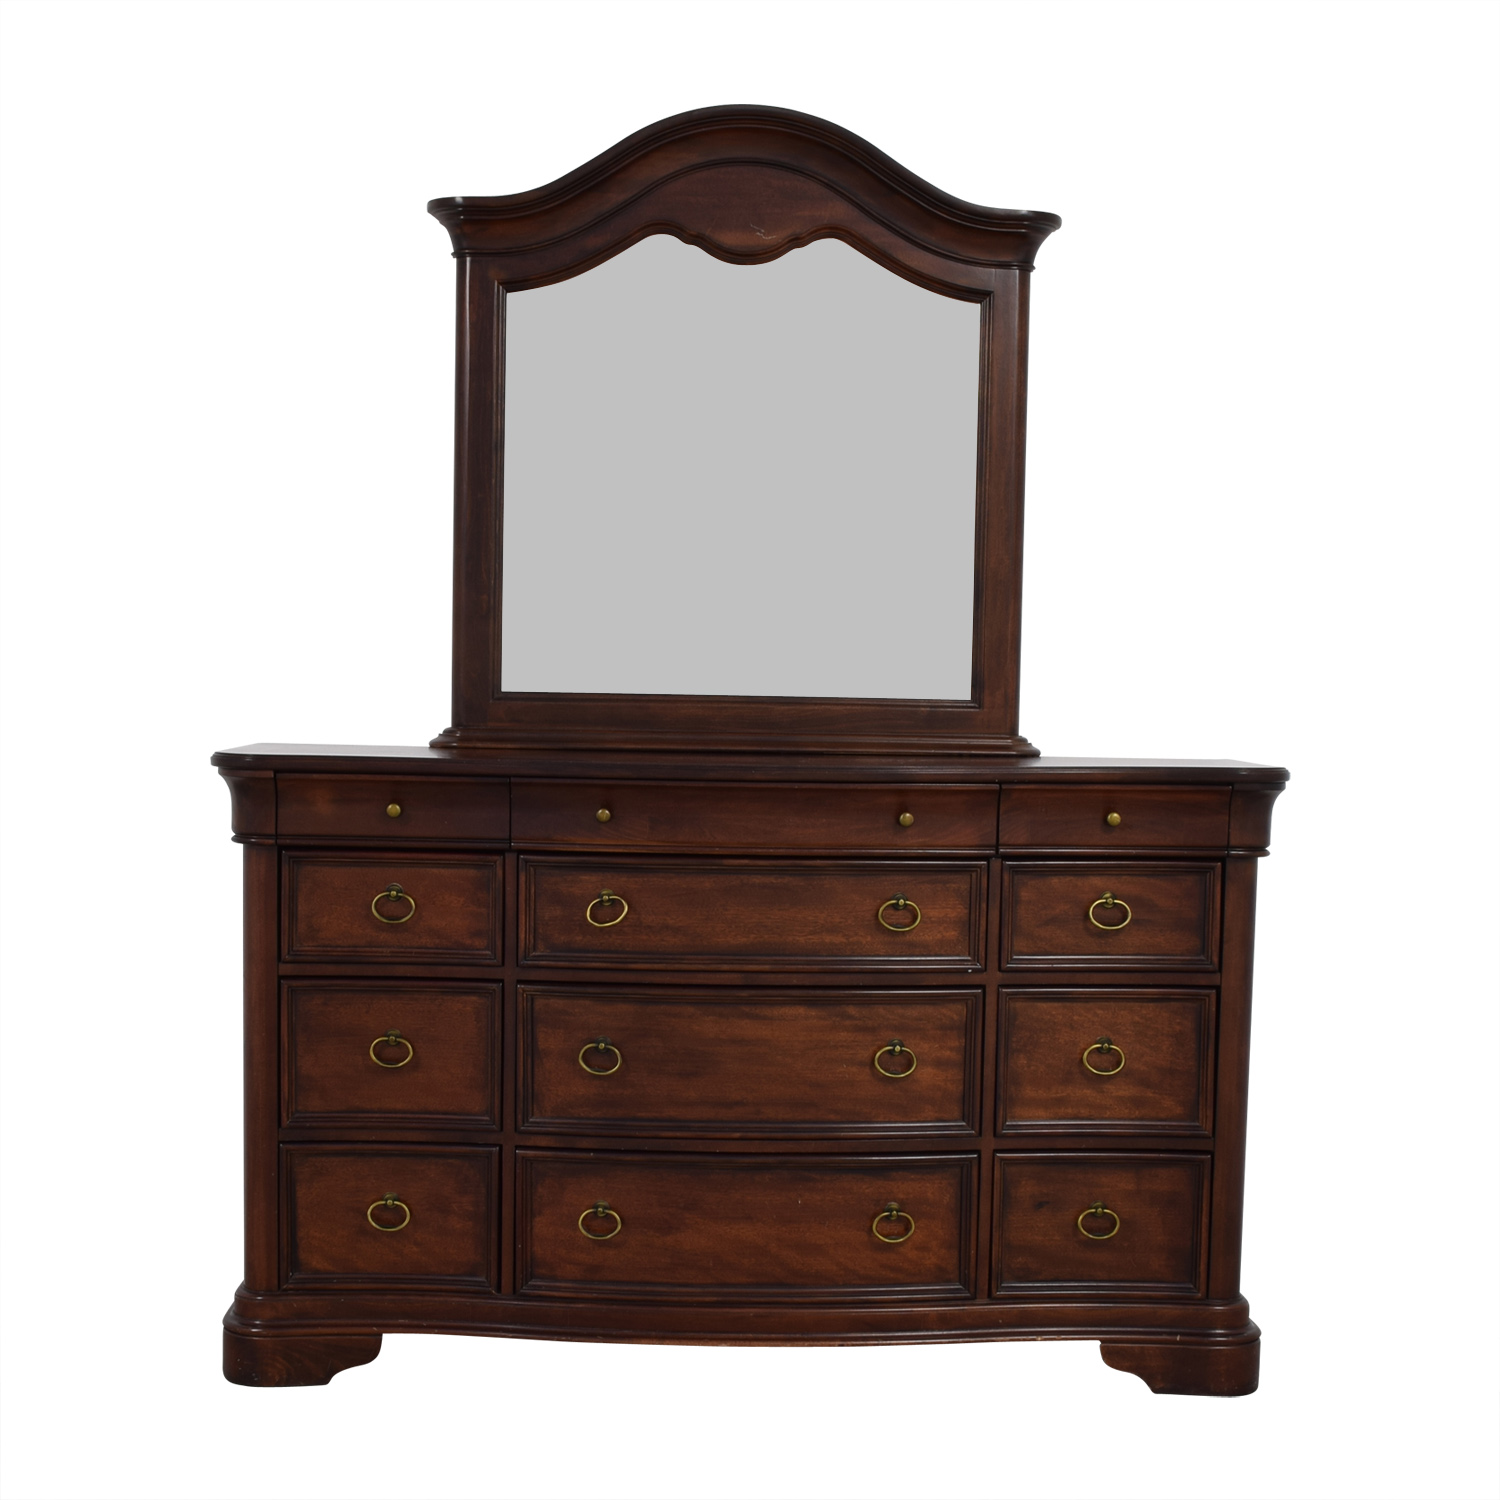 Raymour & Flanigan Raymour & Flanigan Wood Twelve-Drawer Dresser with Mirror nyc